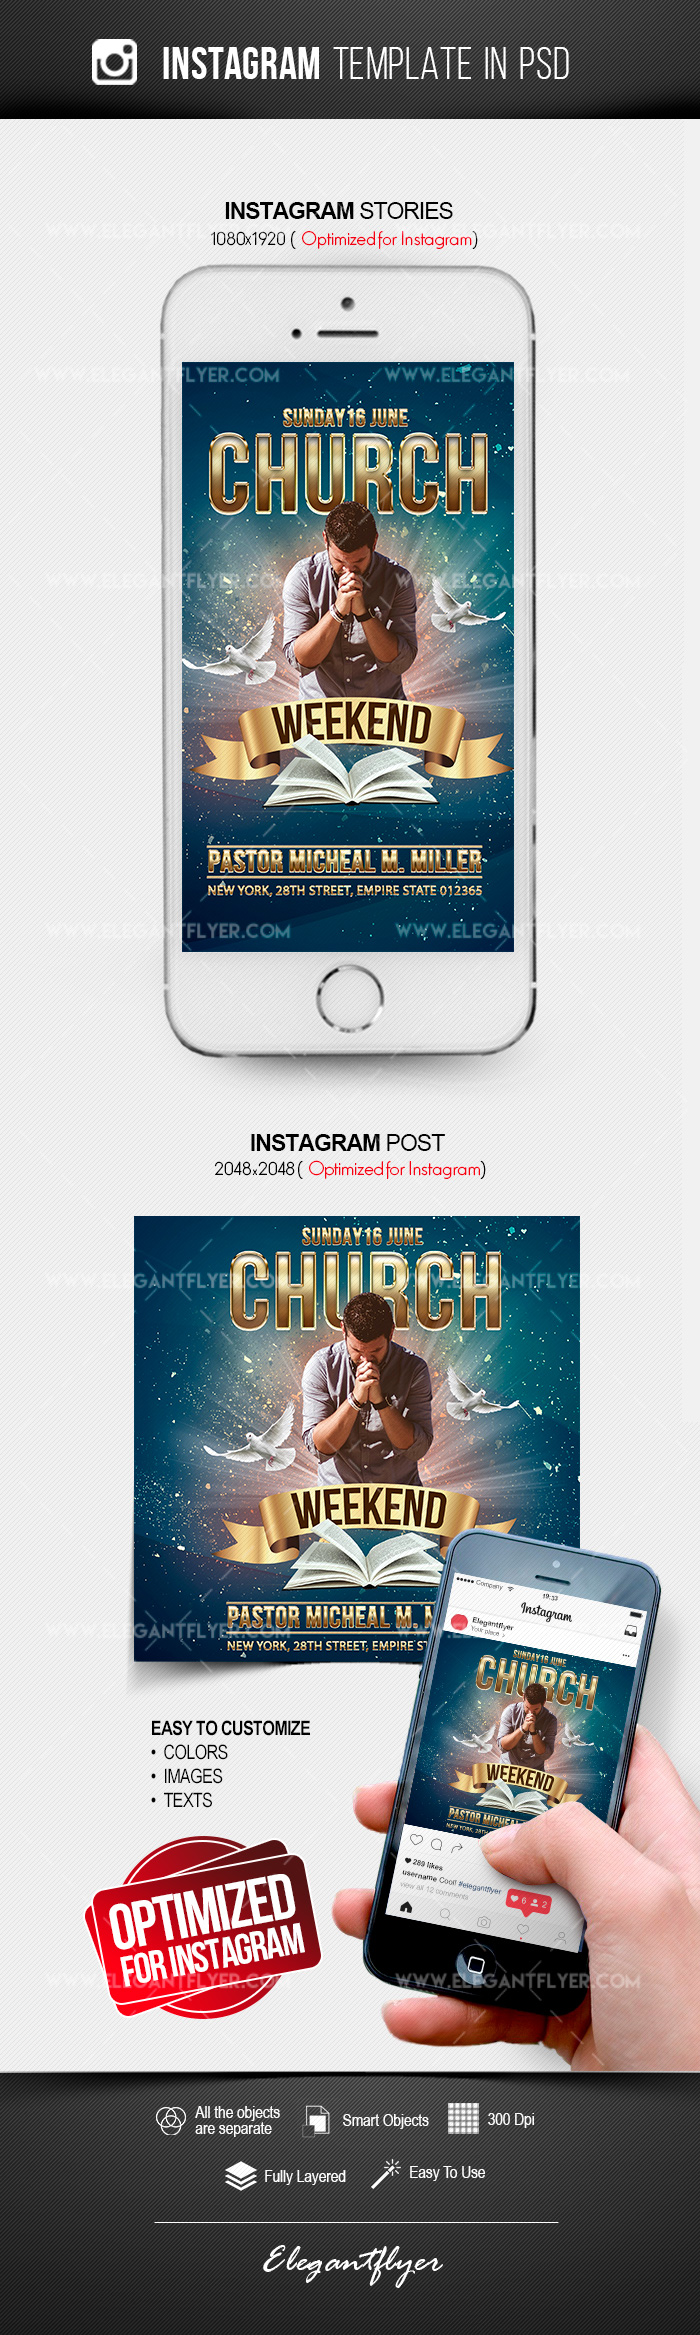 Weekend Church Event – Free Instagram Stories Template in PSD + Post Templates